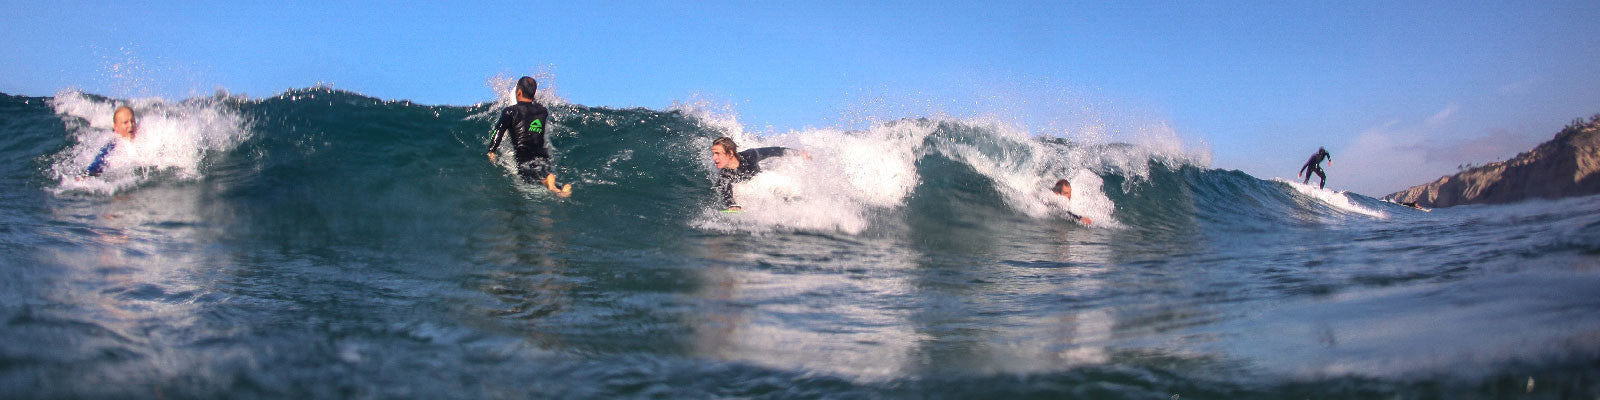 Bodysurfing 101 The beginners guide